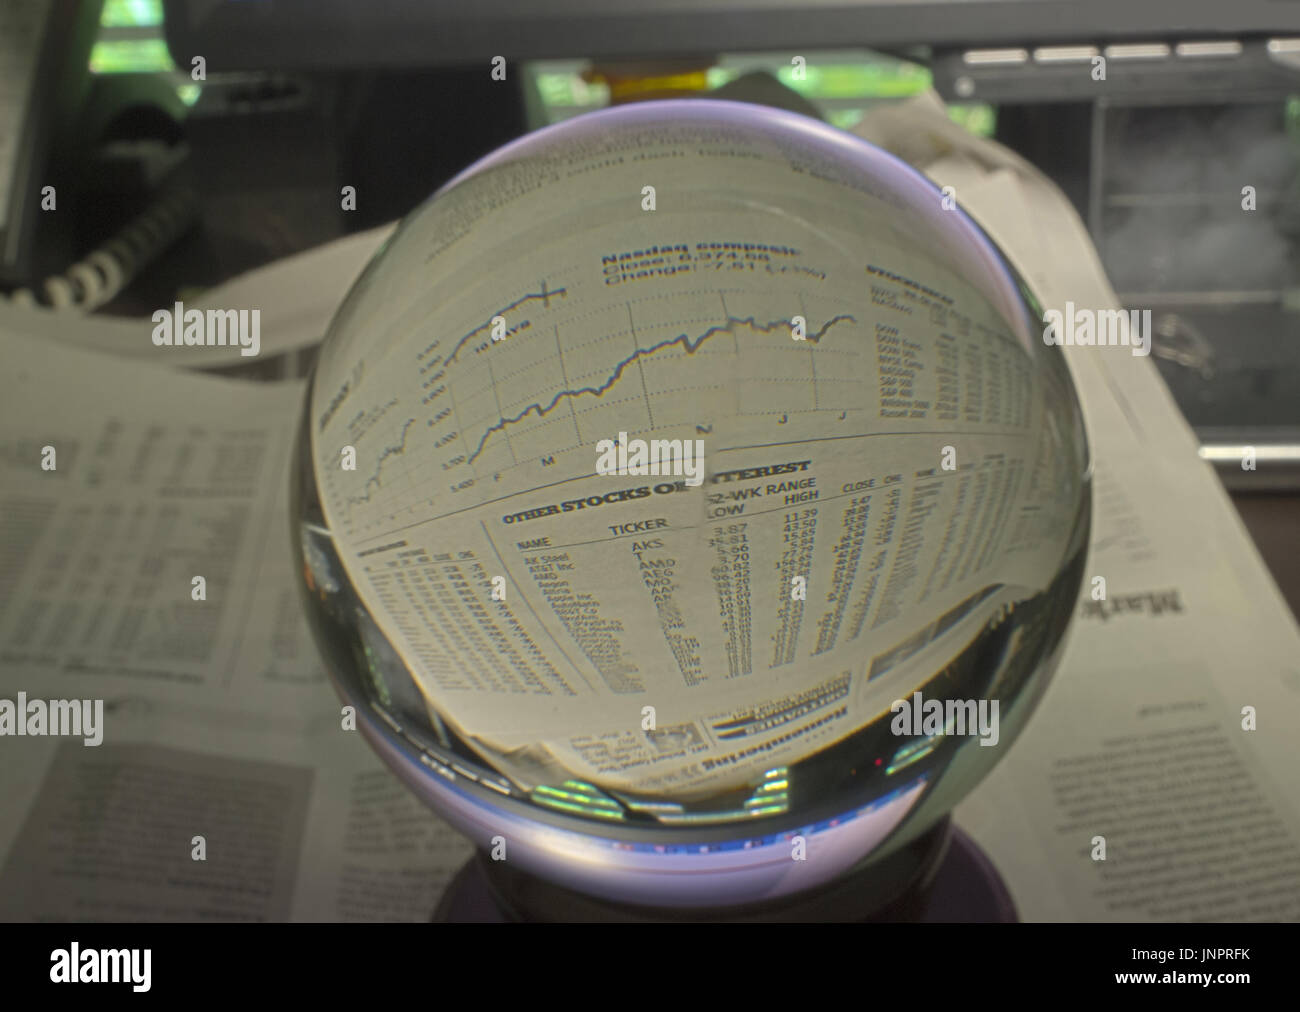 HDR Photo image of stock market graph through a crystal ball - Stock Image